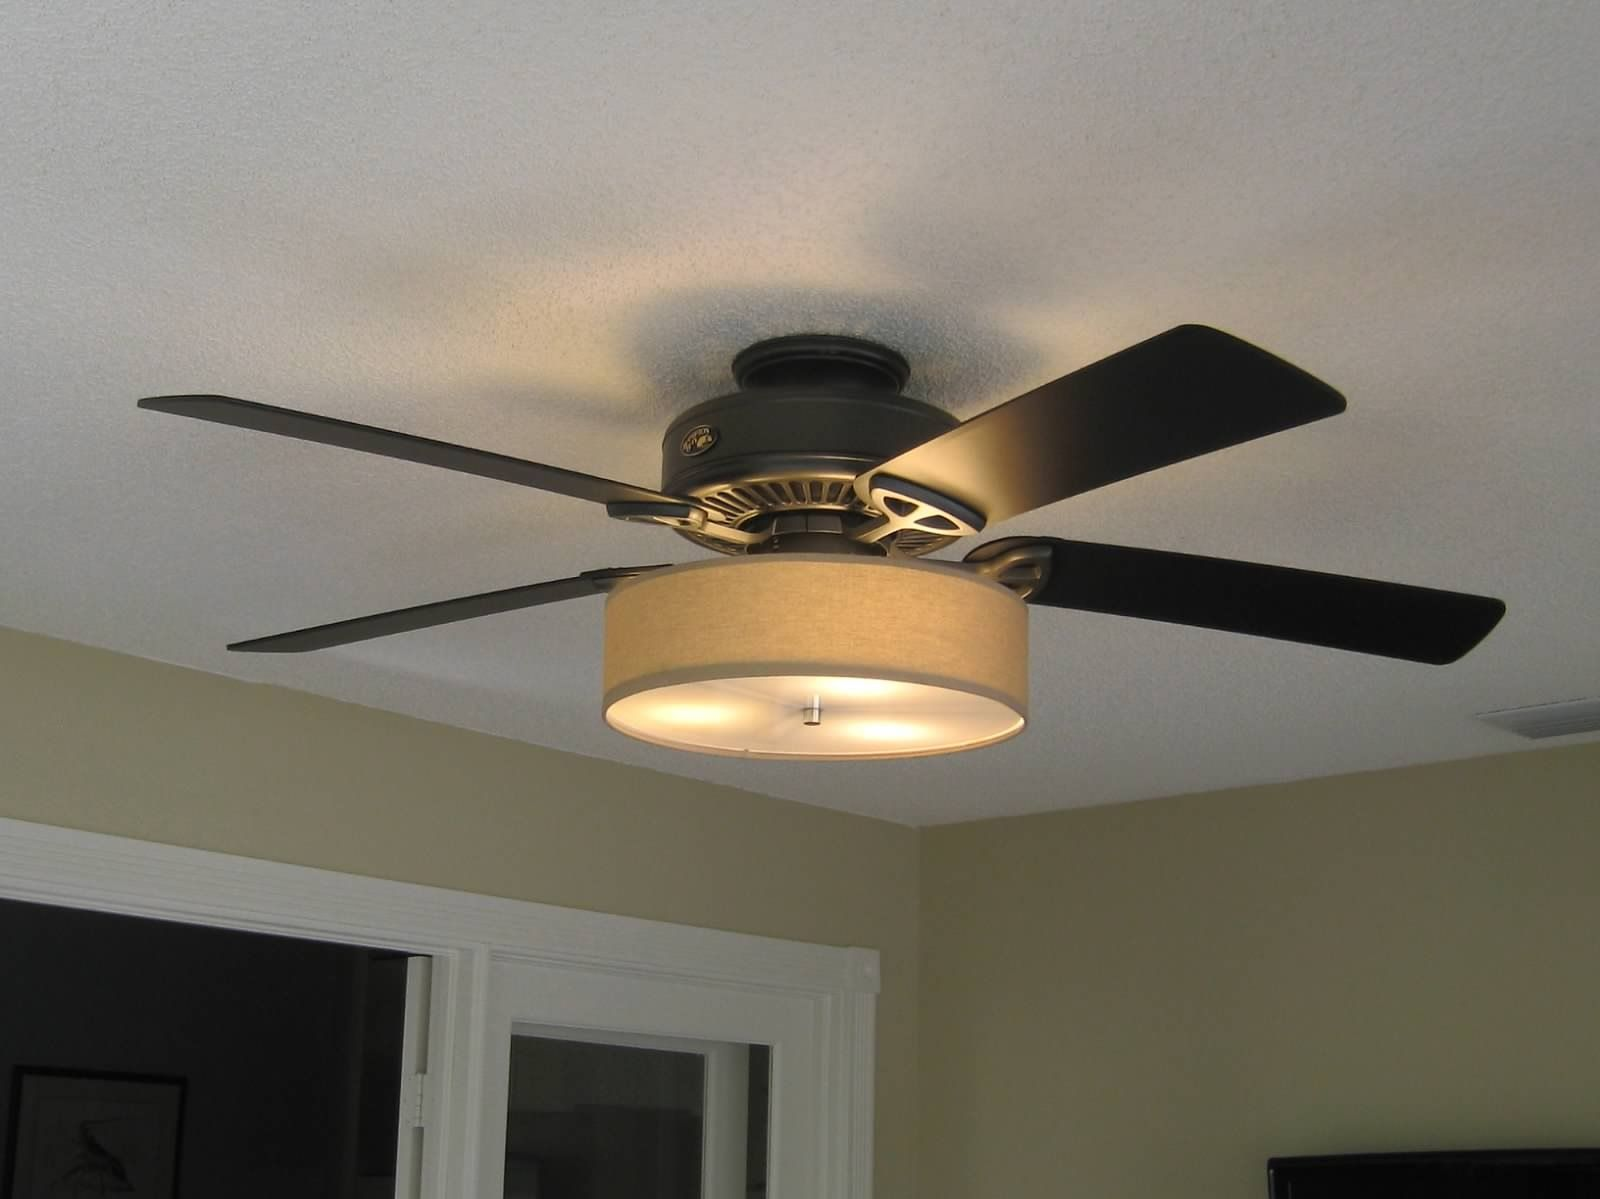 Low Profile Linen Drum Shade Light Kit for Ceiling Fan   Den ideas     Low Profile Linen Drum Shade Kit for Ceiling Fan   S T  Lighting LLC